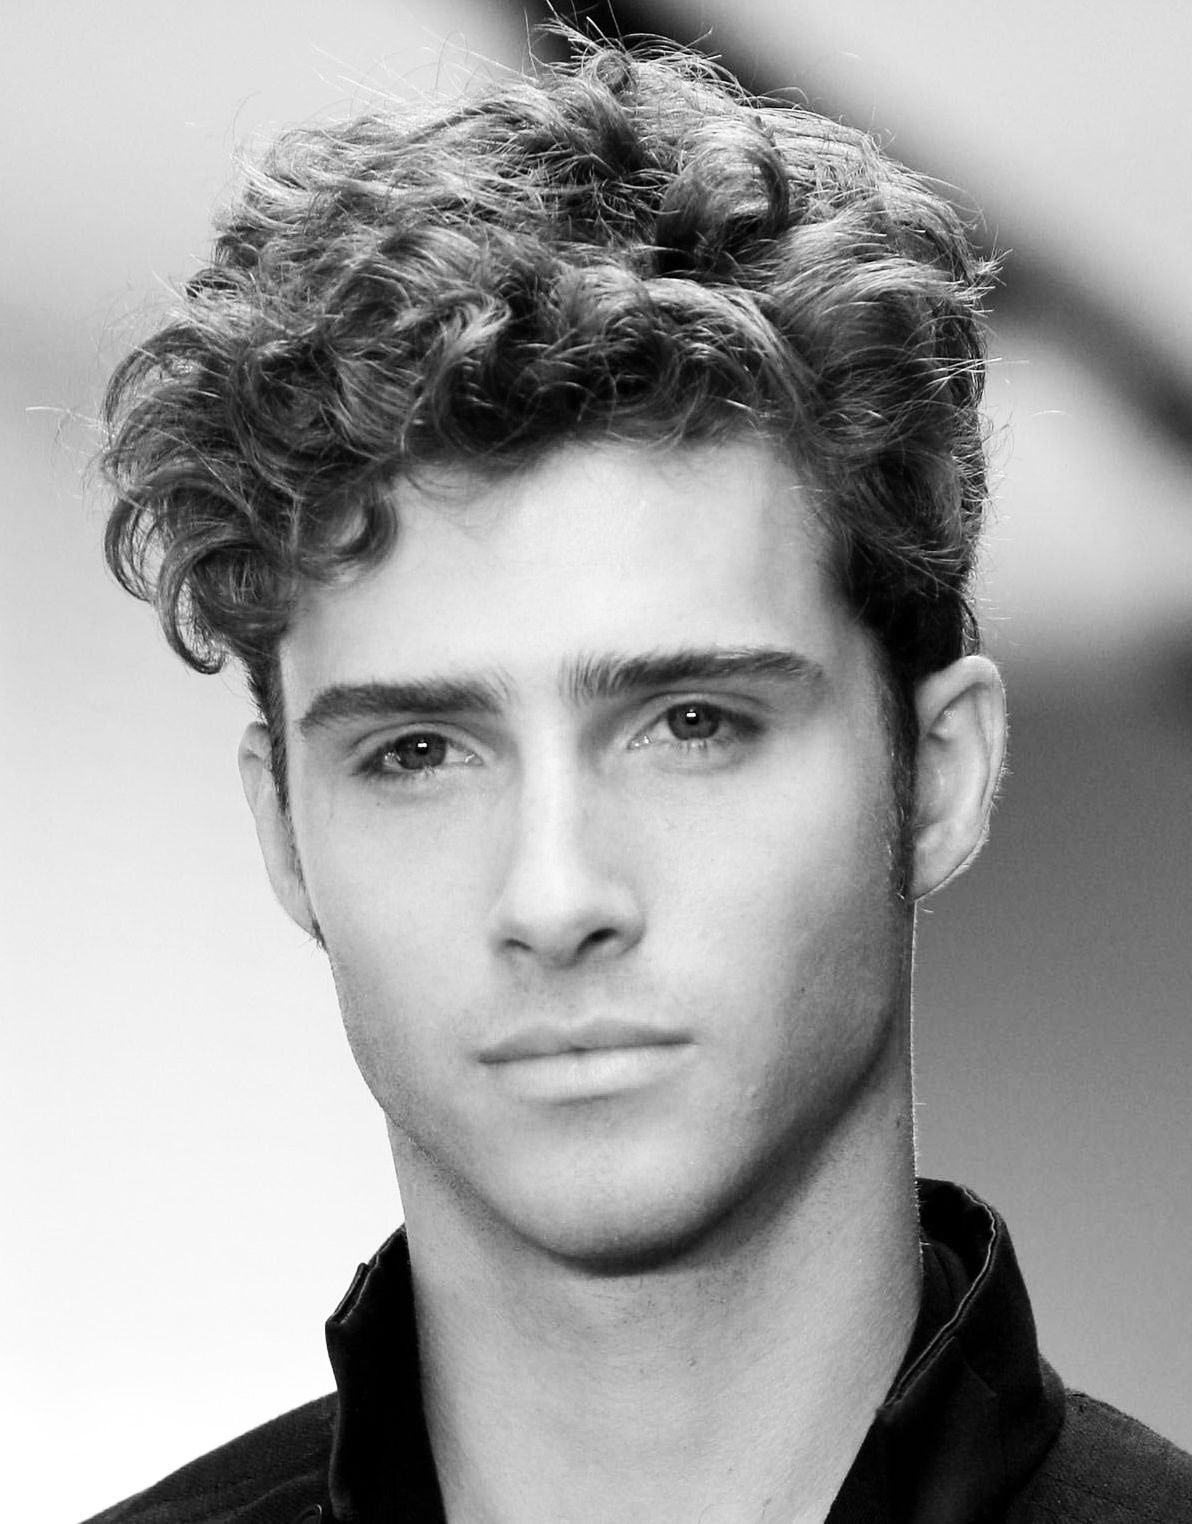 http://www.maximumfx.com/Websites/mfx/images/curly-hair-mohawk-boy ...